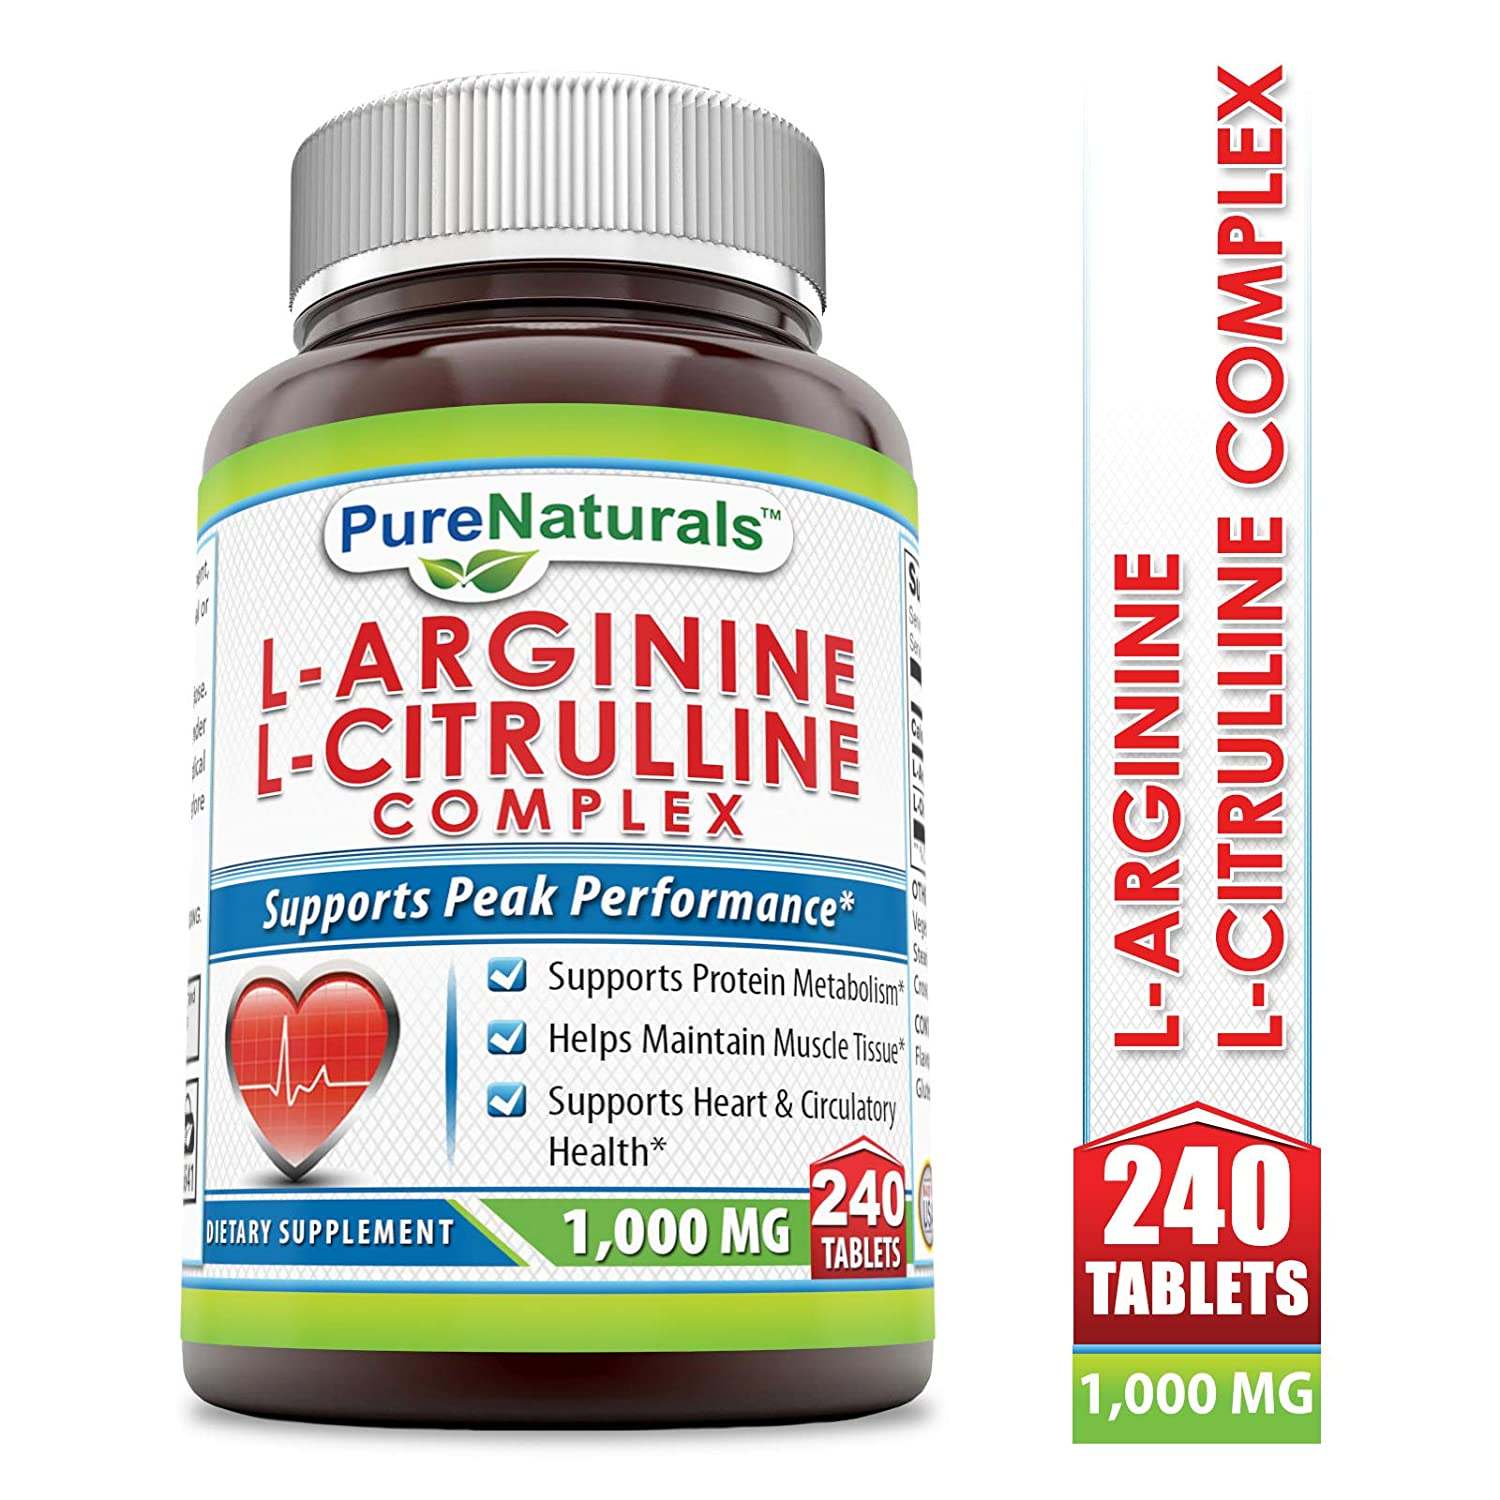 Pure Naturals L-Arginine L-Citrulline Complex, 1000 Mg Tablets, 240 Count – Supports Cardiovascular Health* and Circulatory Function, Helps Maintain Normal Blood Pressure*